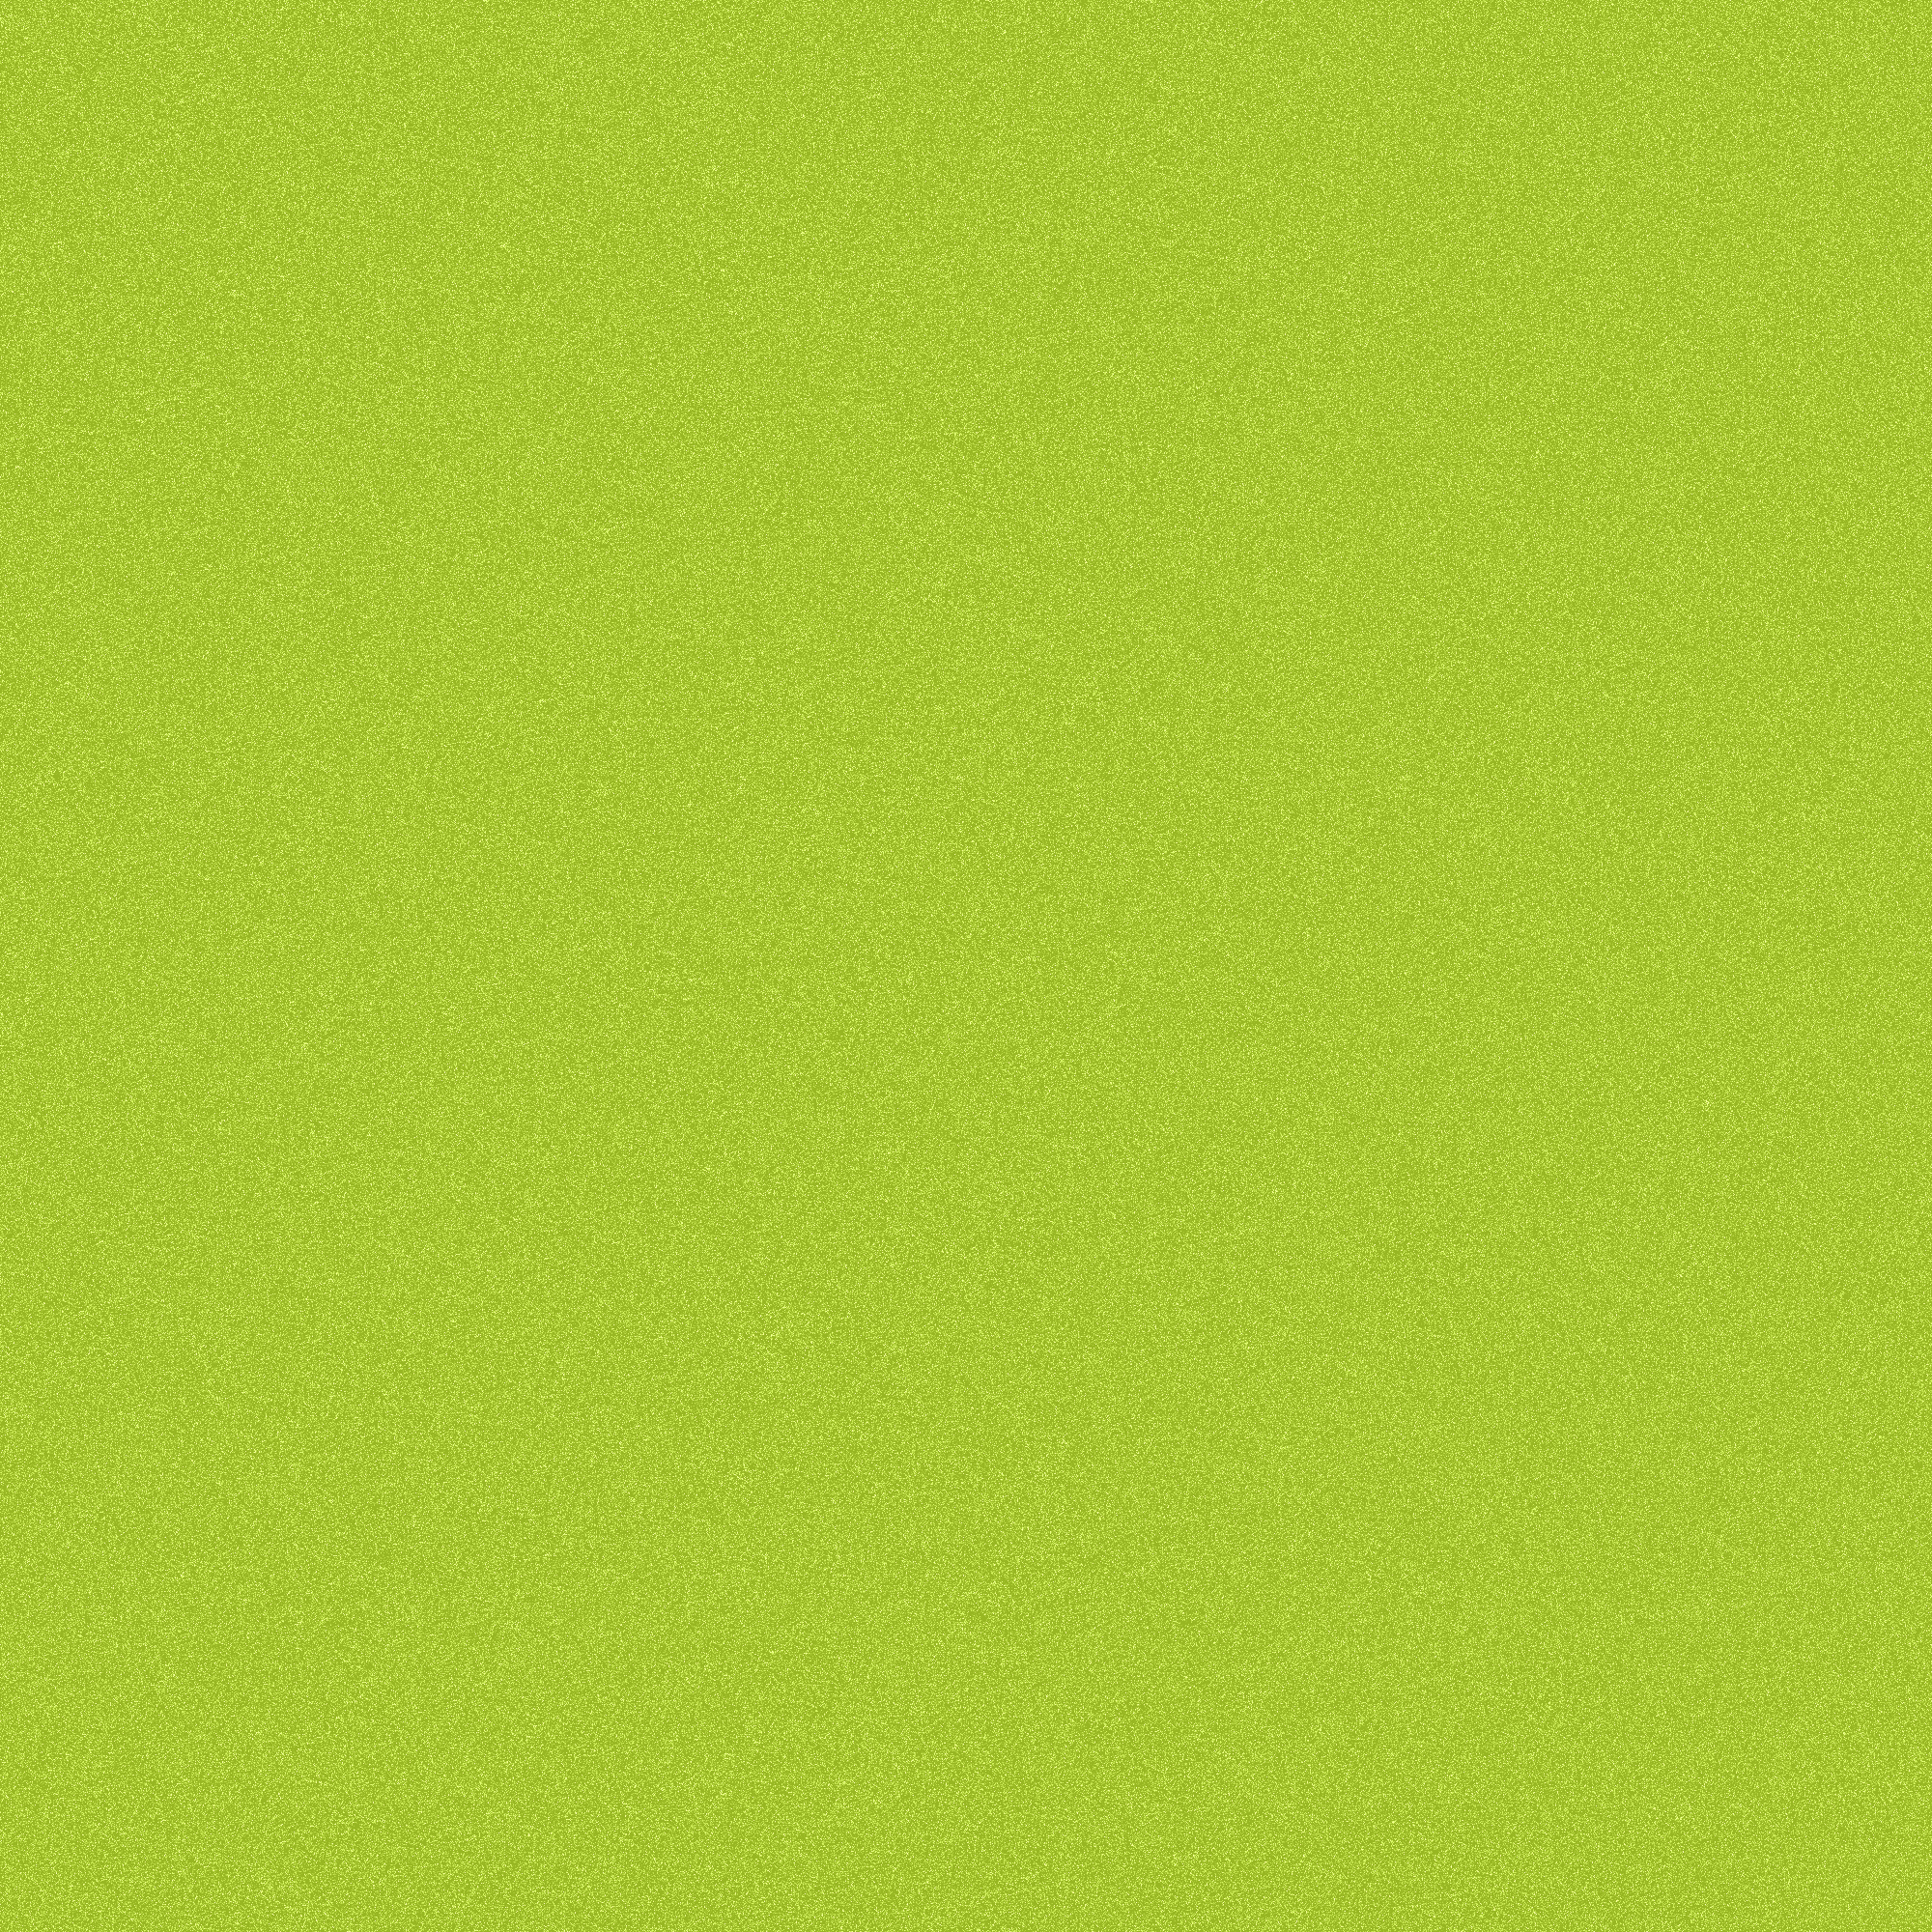 Light Green Background - WallpaperSafari